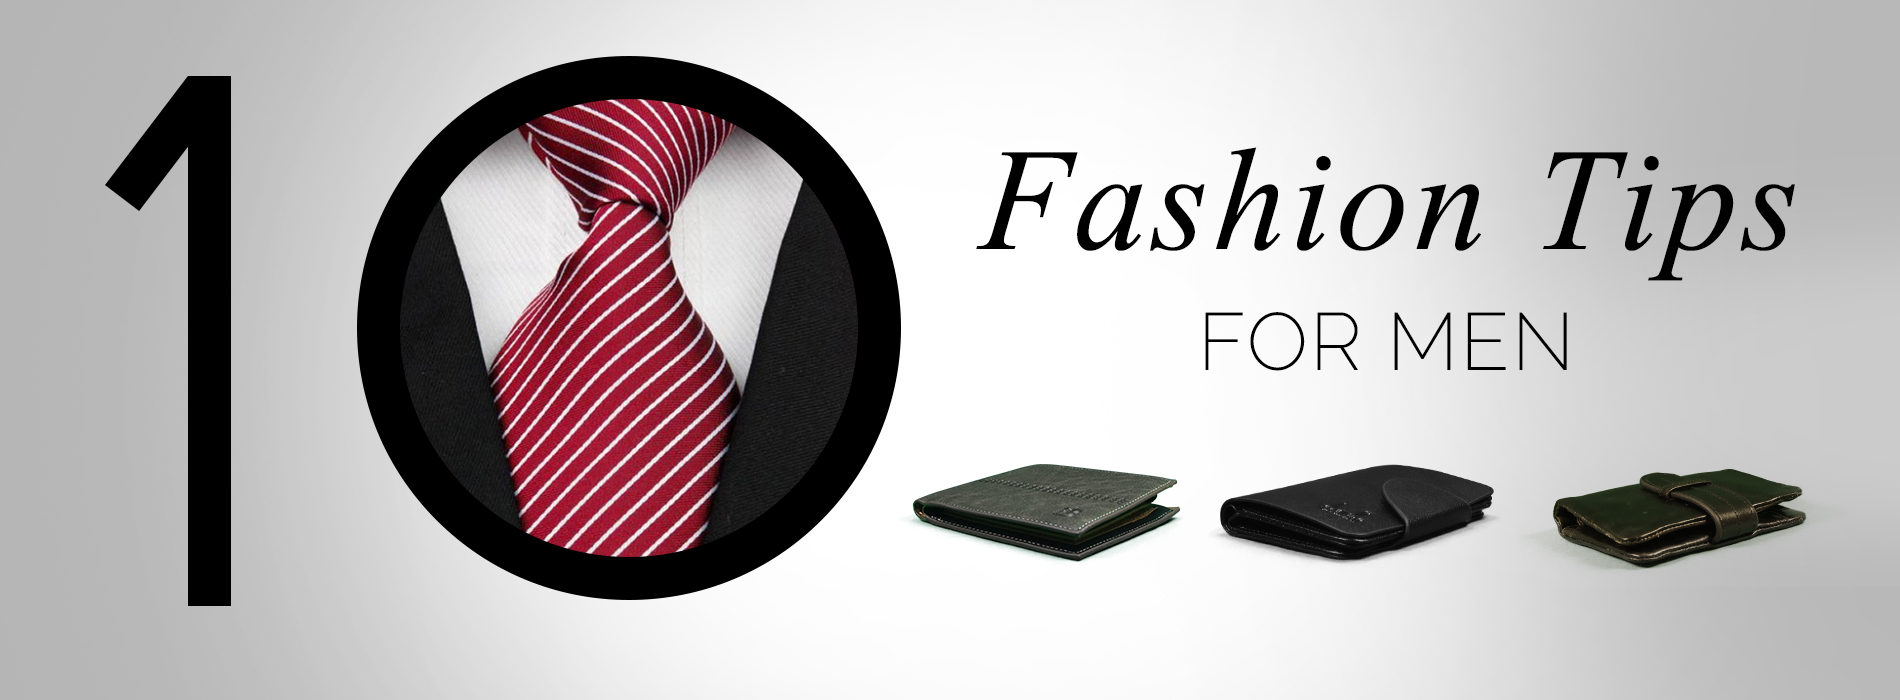 Articles Wallsters Mens Wear And Accessories